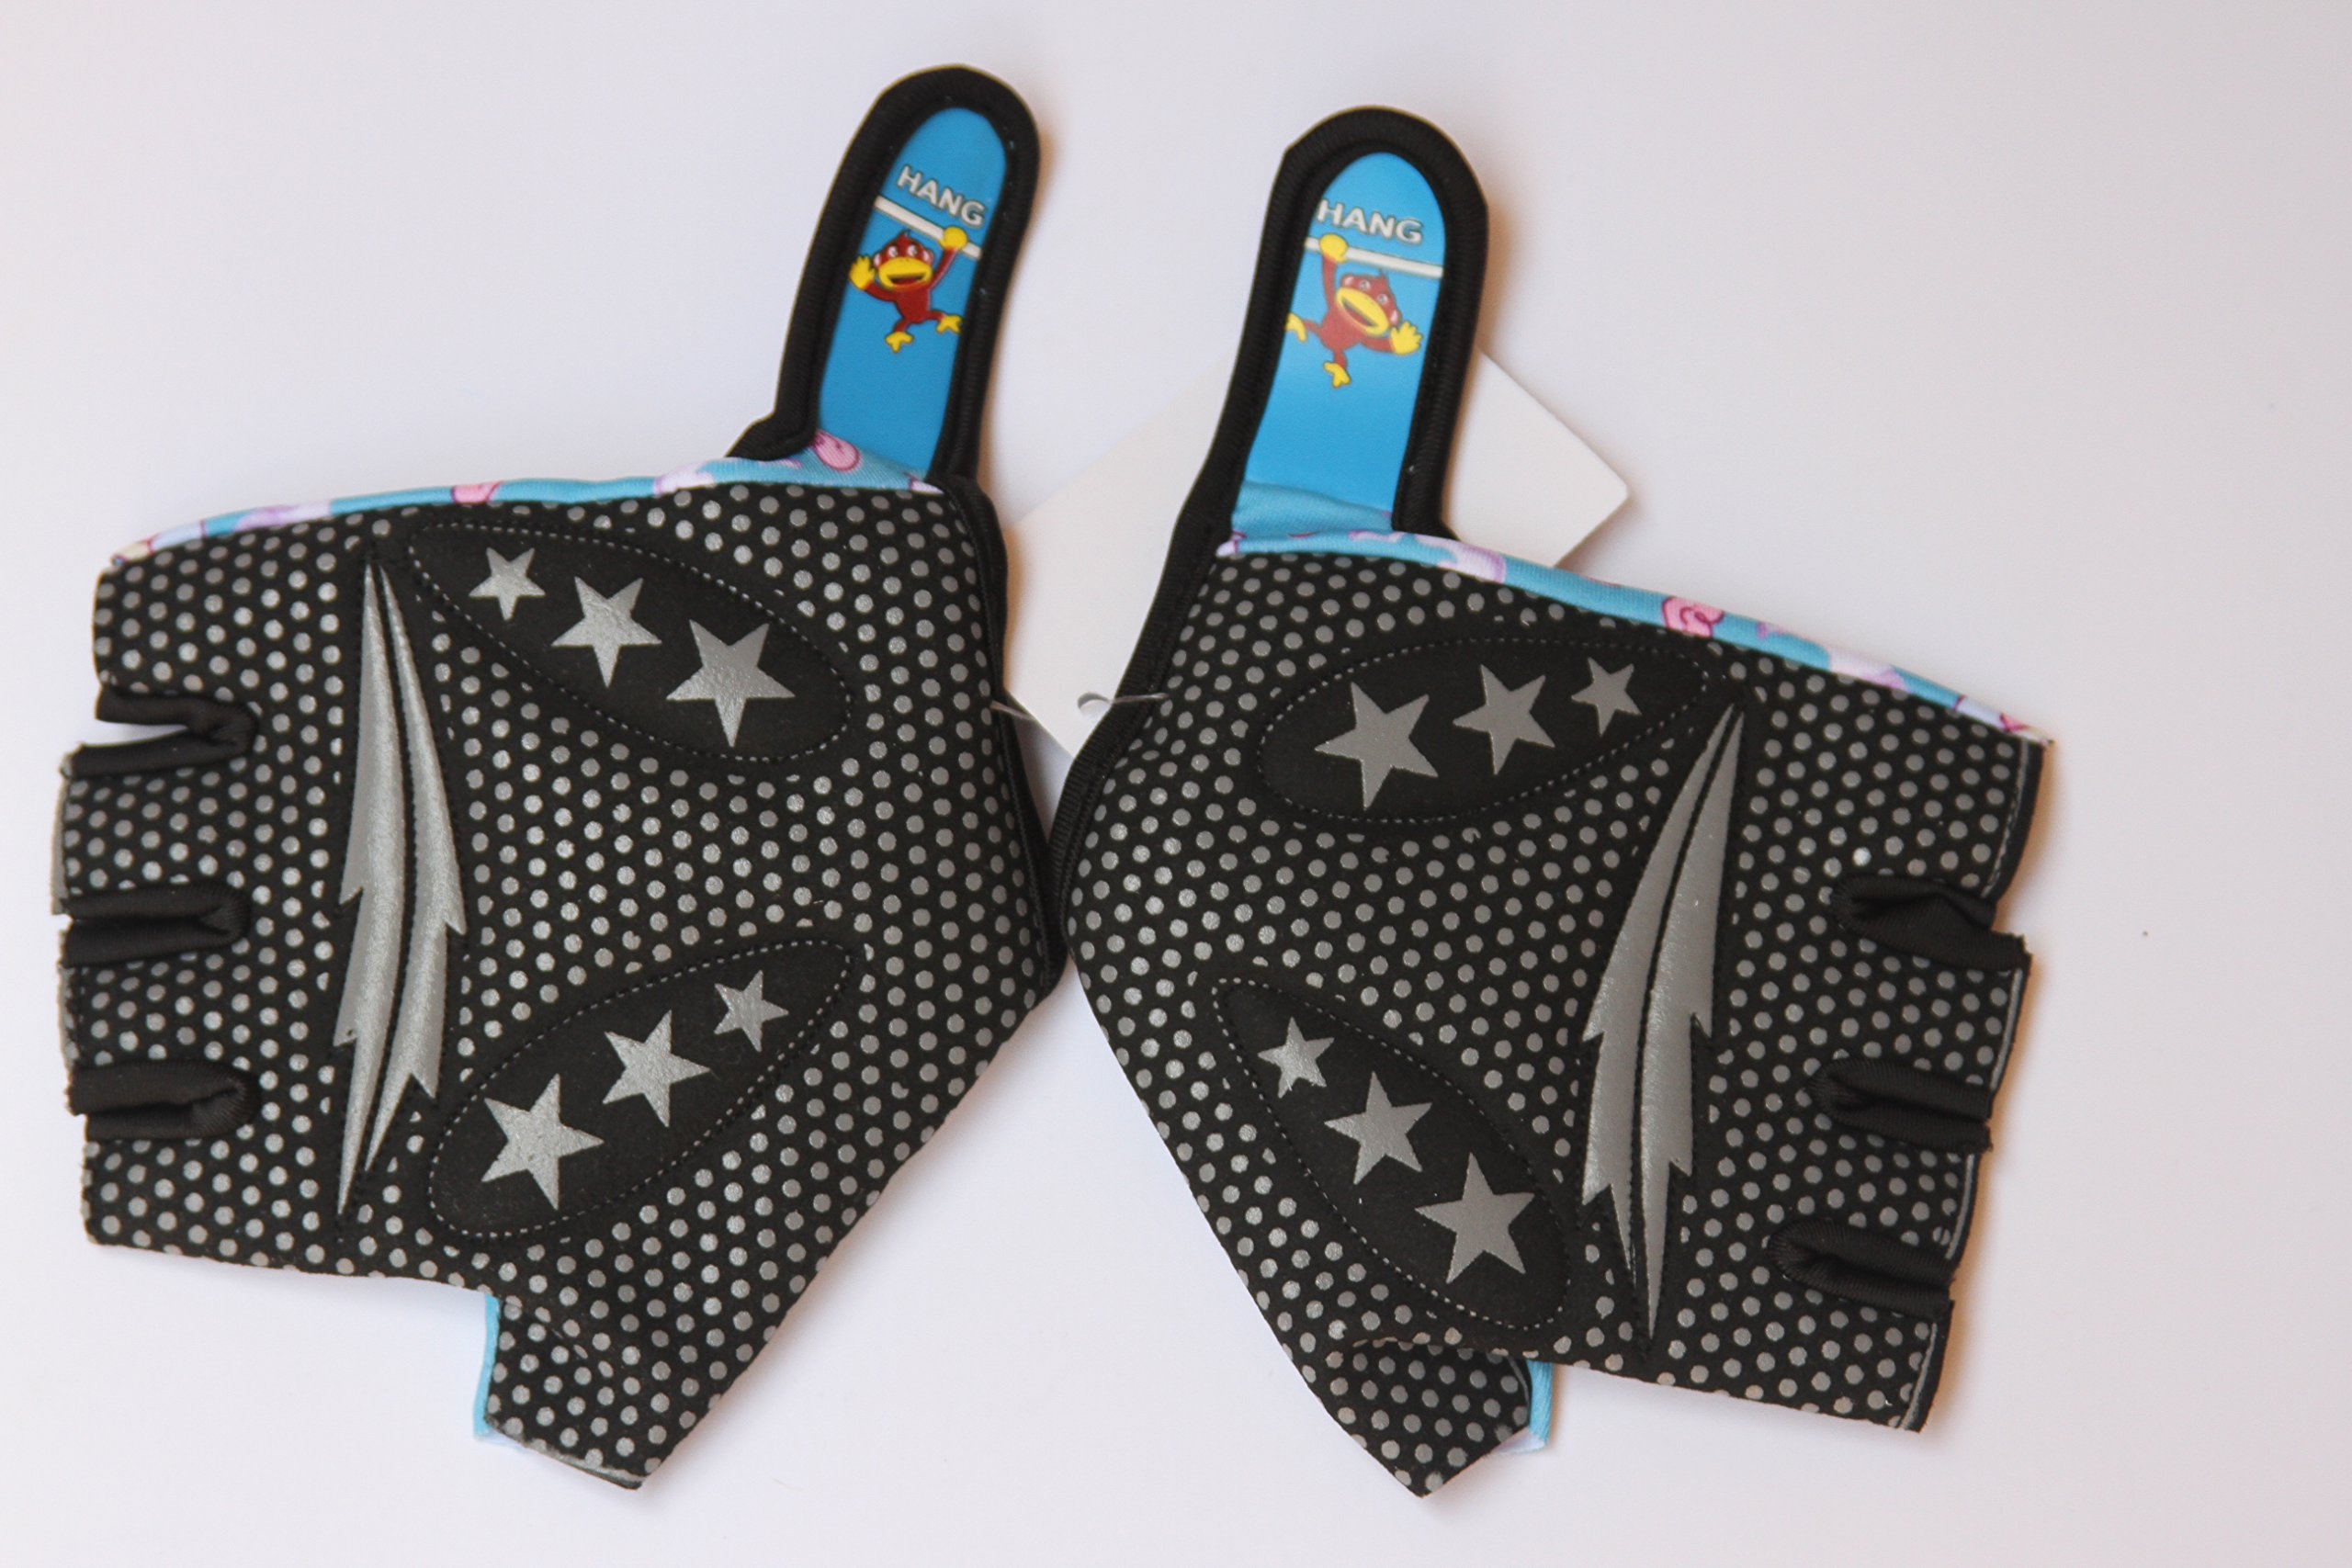 HANG Monkey Bars Gloves with Grip Control (for 9,10,11 Children) by HANG (Image #5)